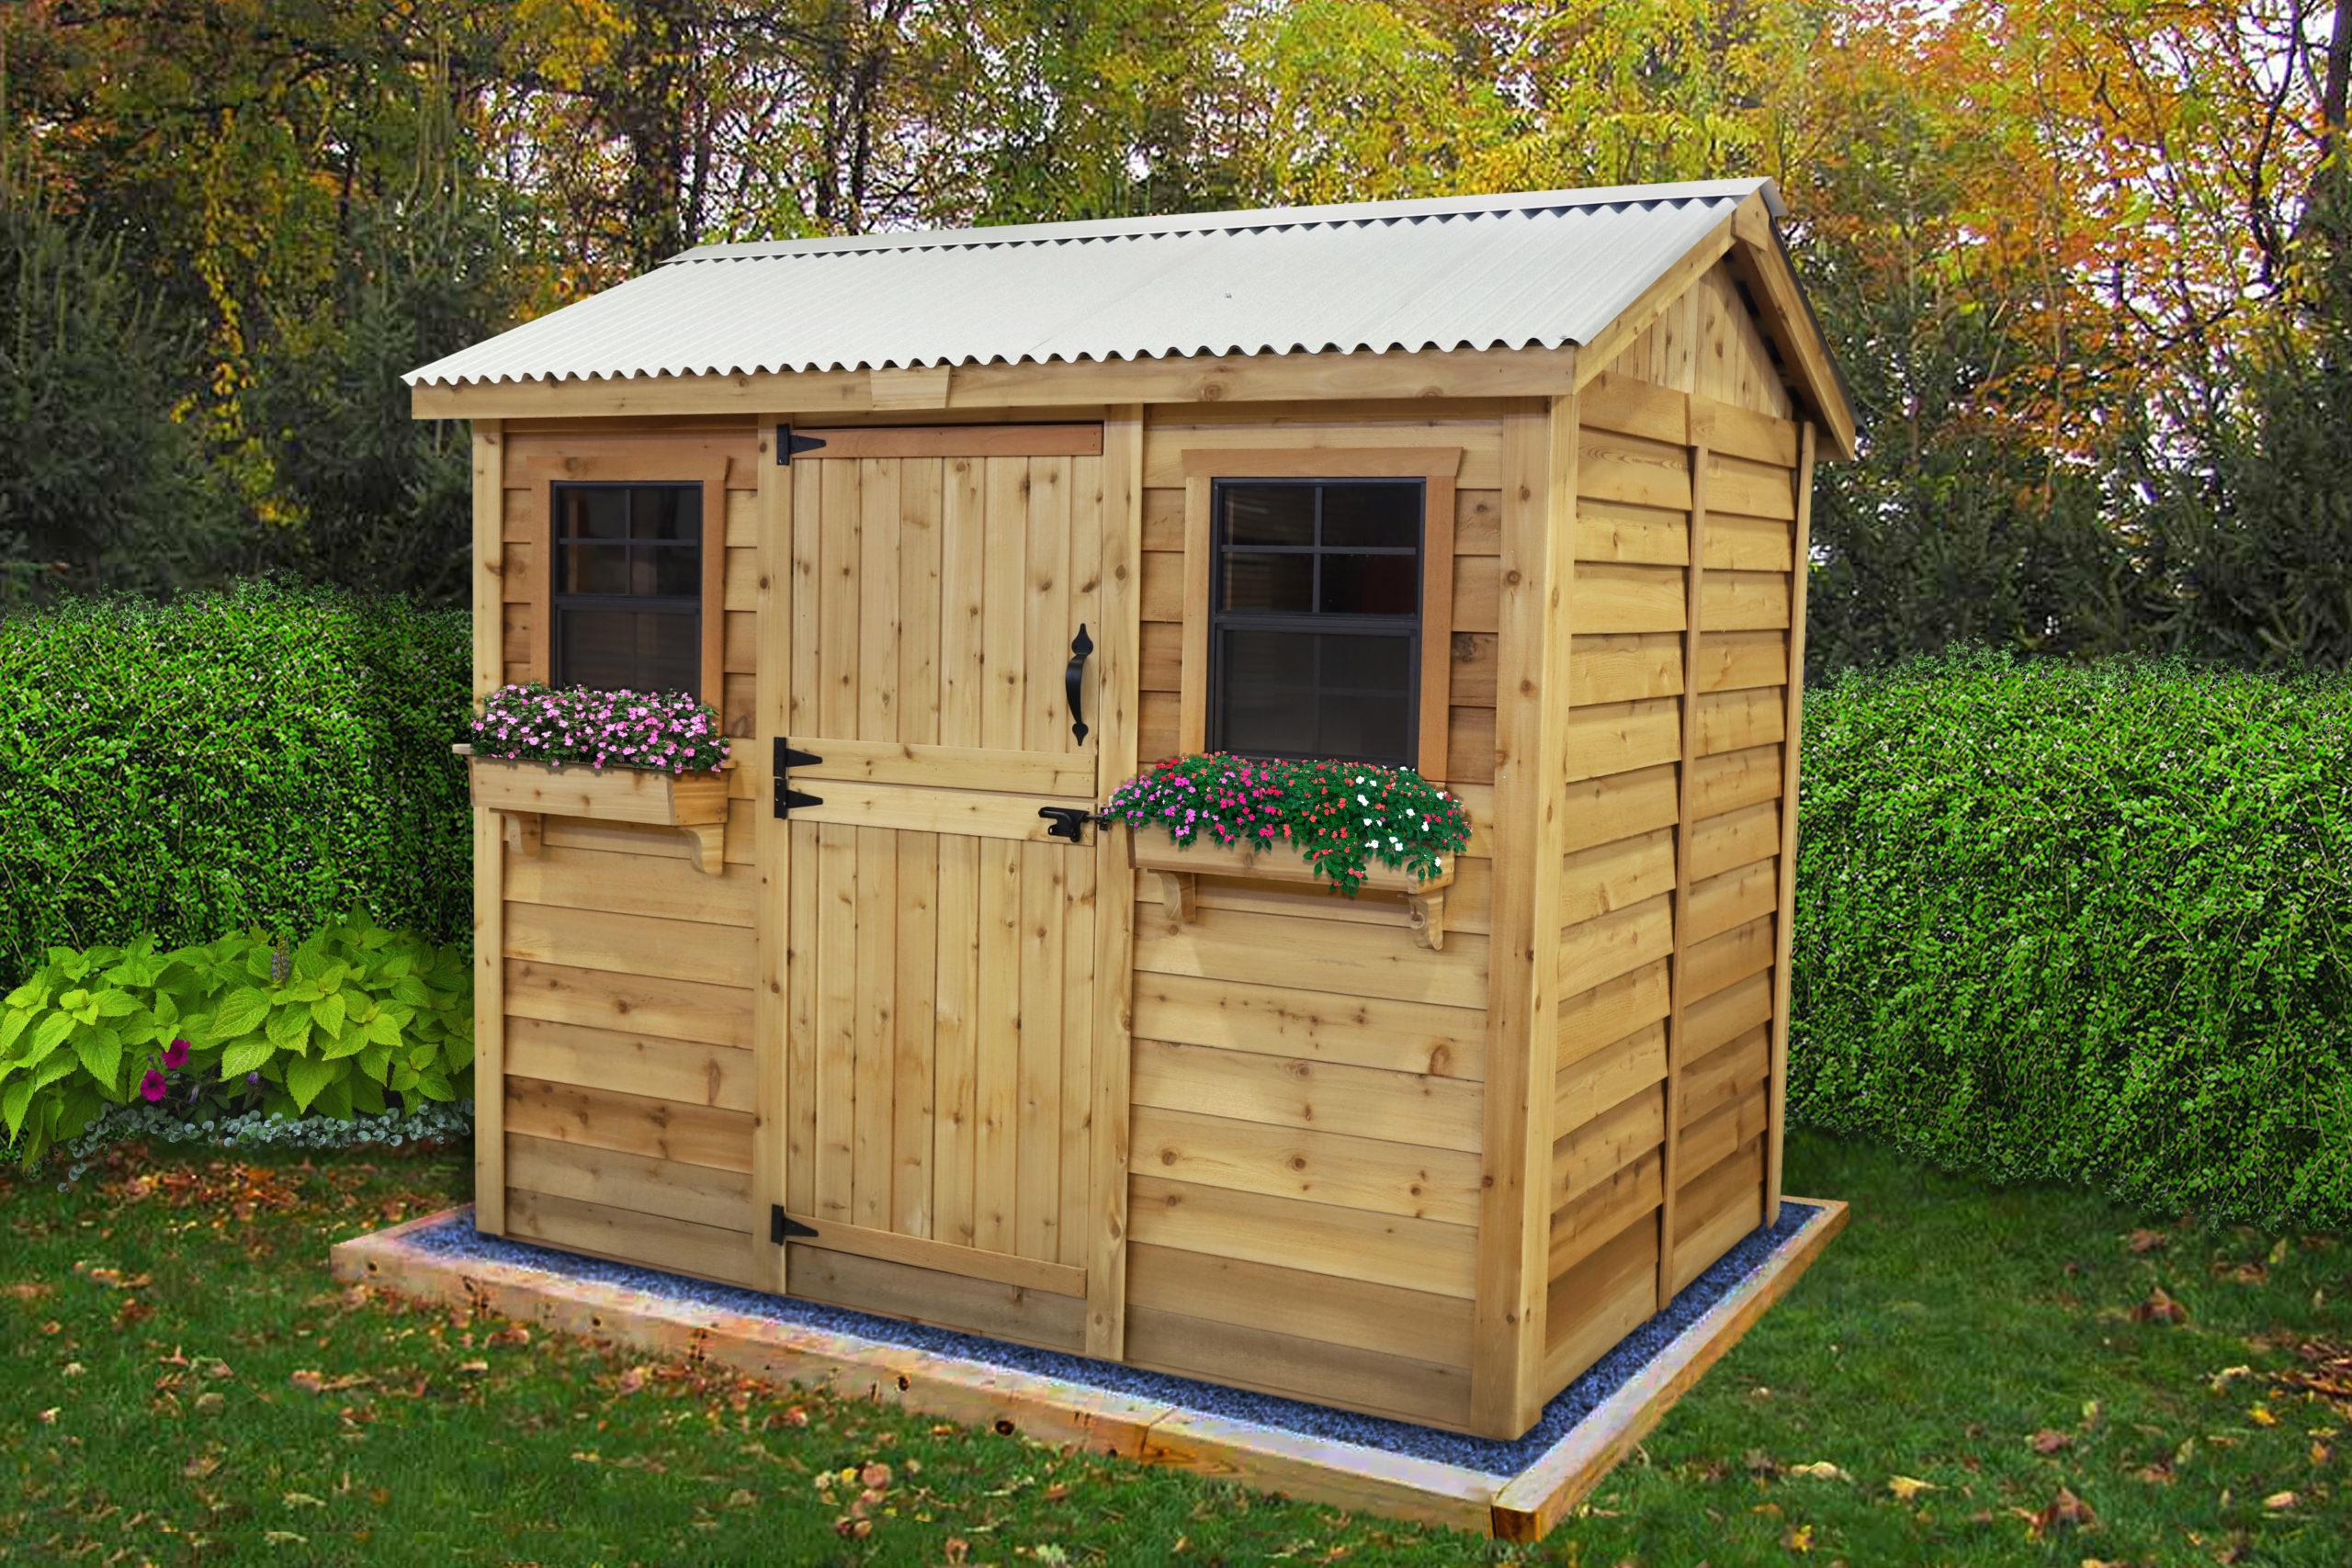 Shed Kits for Sale   9x6 Cabana   - Outdoor Living Today on Outdoor Living Today Cabana id=59960